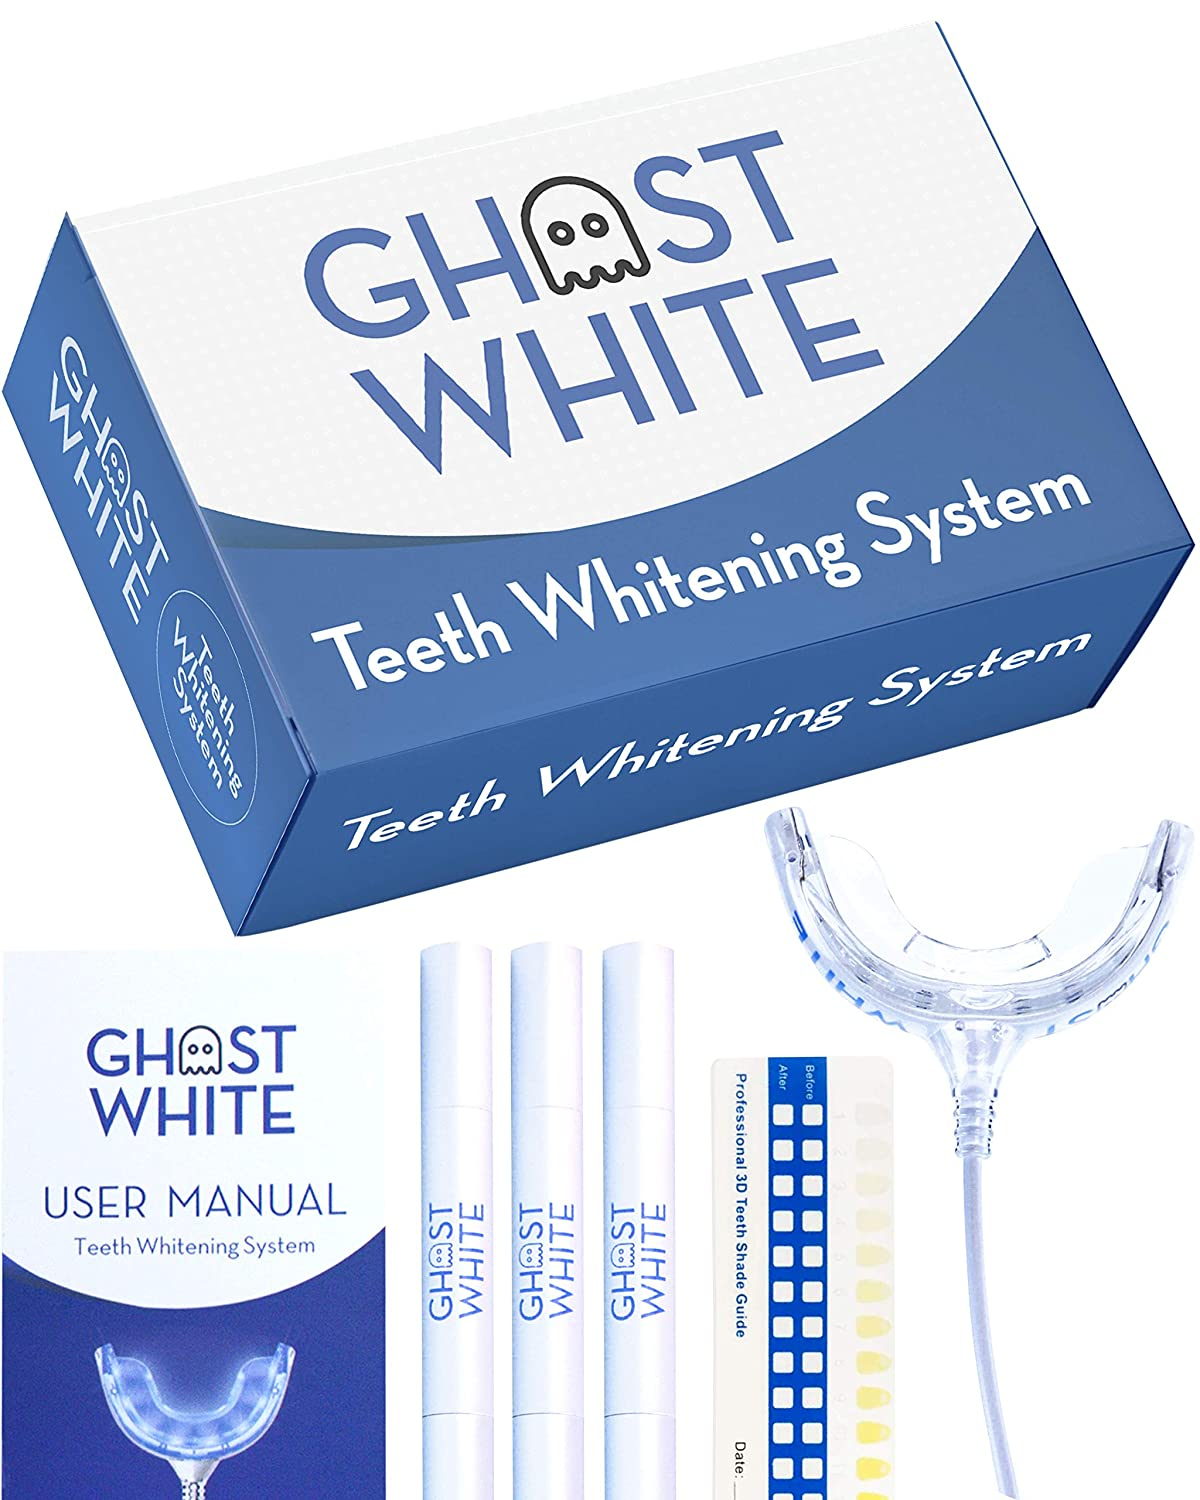 Ghost White Teeth Whitening Kit - Professional LED Light for Whiter Teeth Without Sensitivity, Includes 3 Smart Teeth Whitening Gel Refill Pens, Whitens in Less Than 10 Minutes